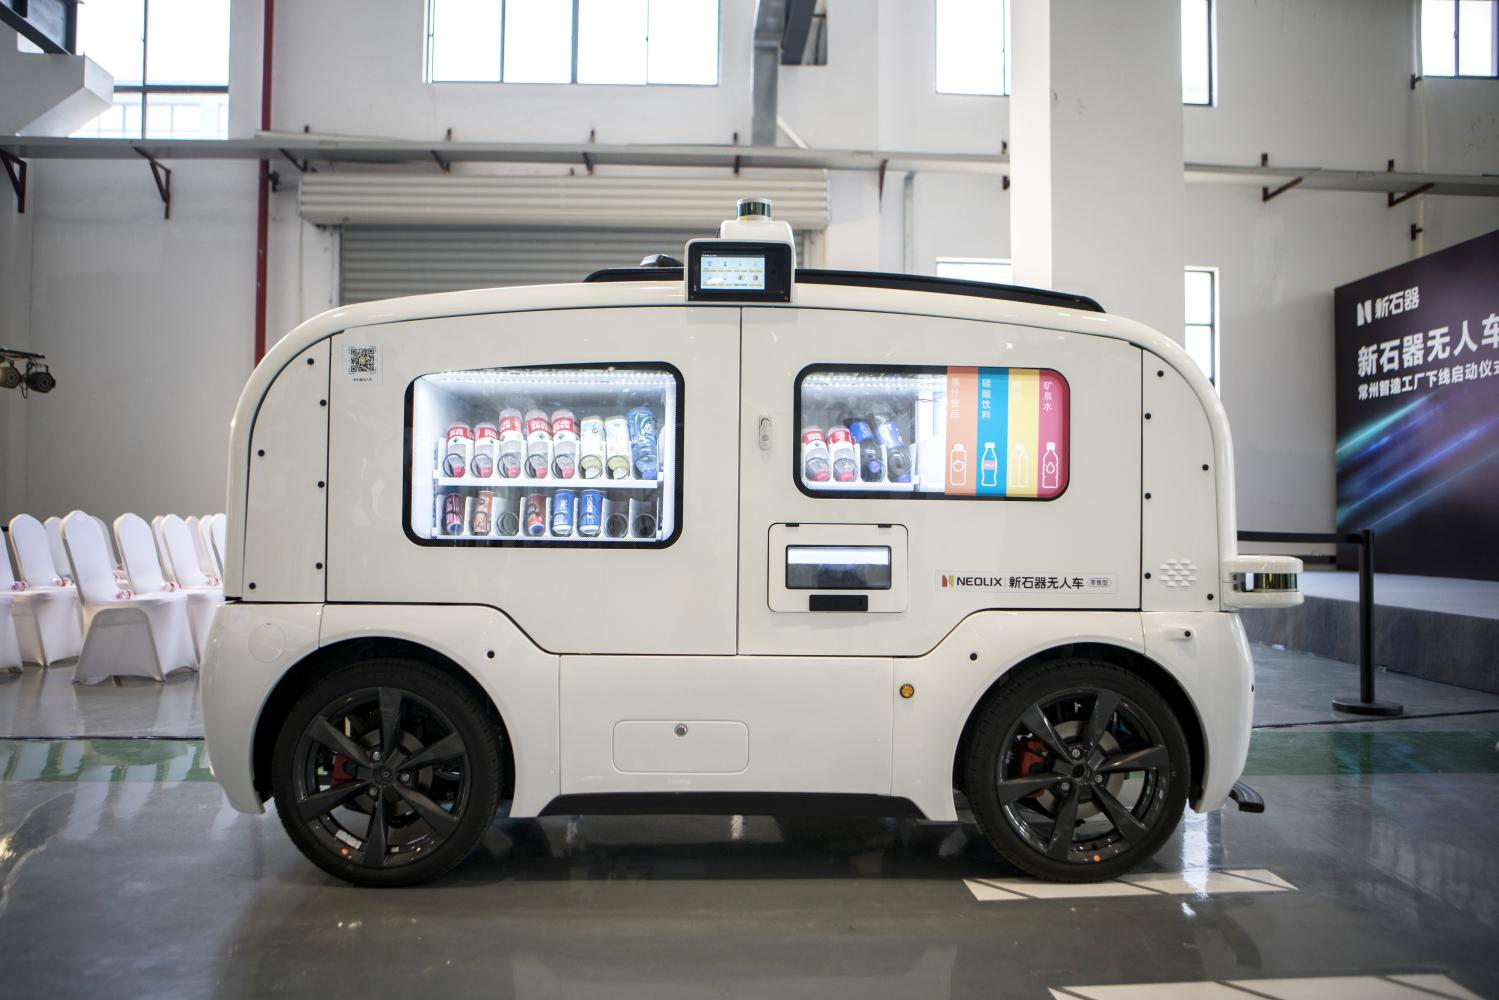 Robo-delivery vans are here as production begins